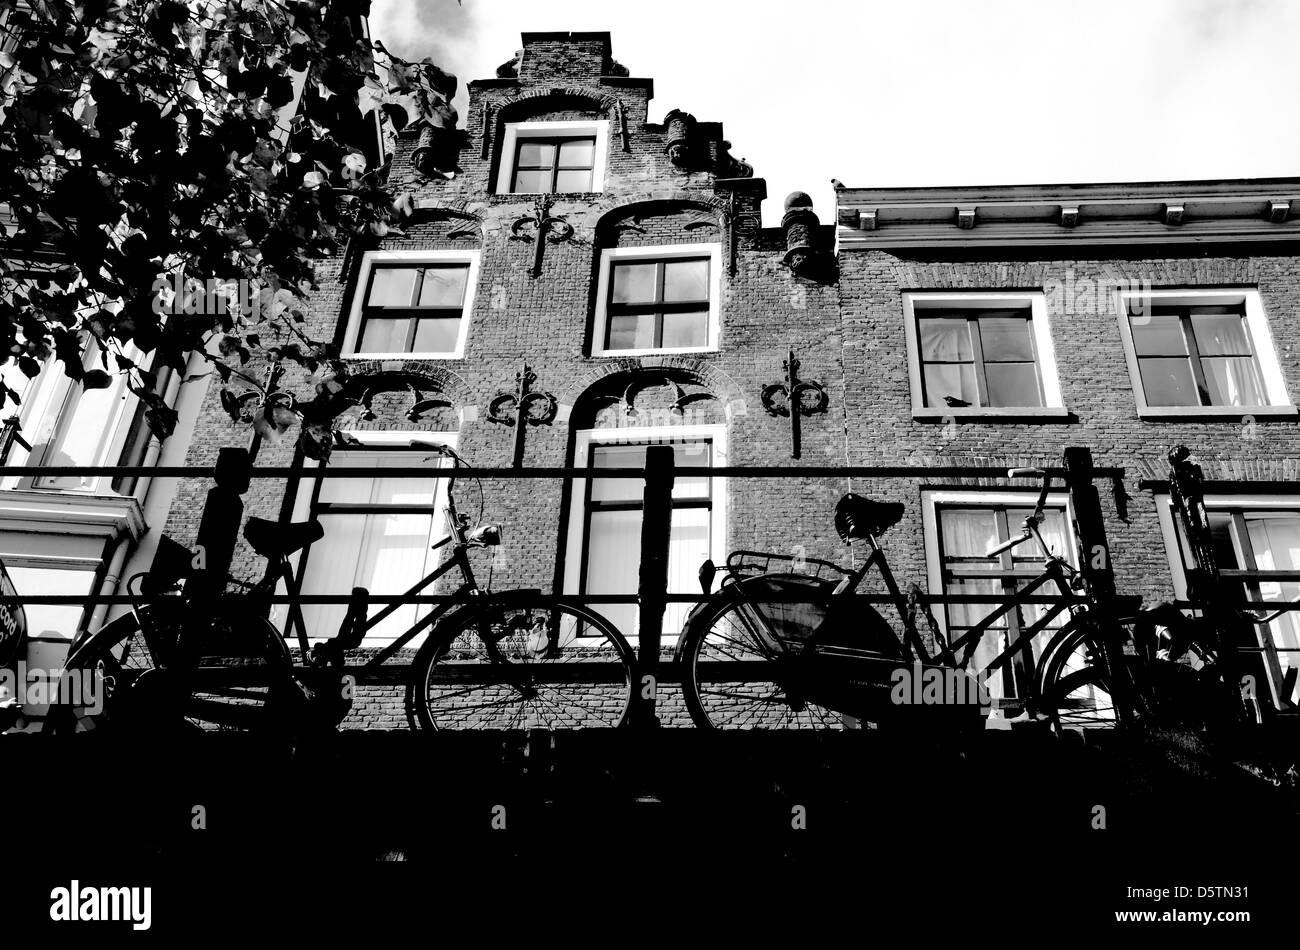 Bicycles parked on a bridge in front of an old canal house, Oude Gracht, Utrecht, the Netherlands Stock Photo